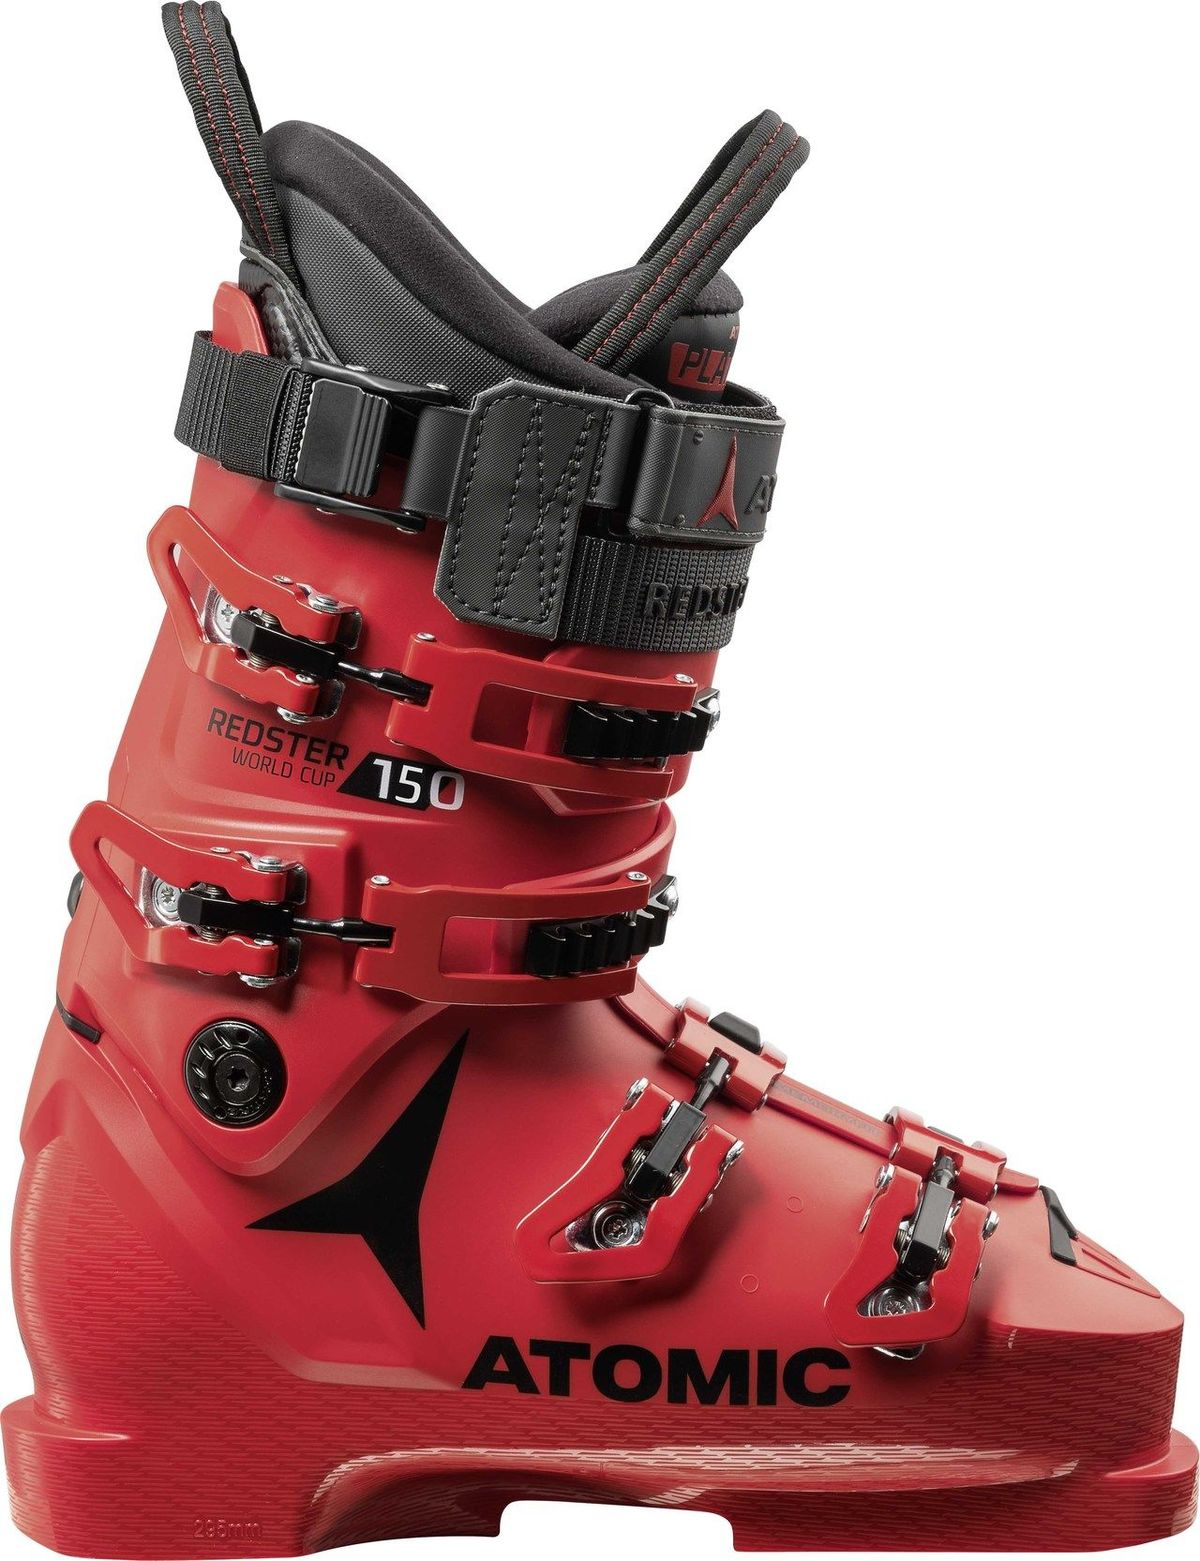 Atomic Redster Worldcup 150